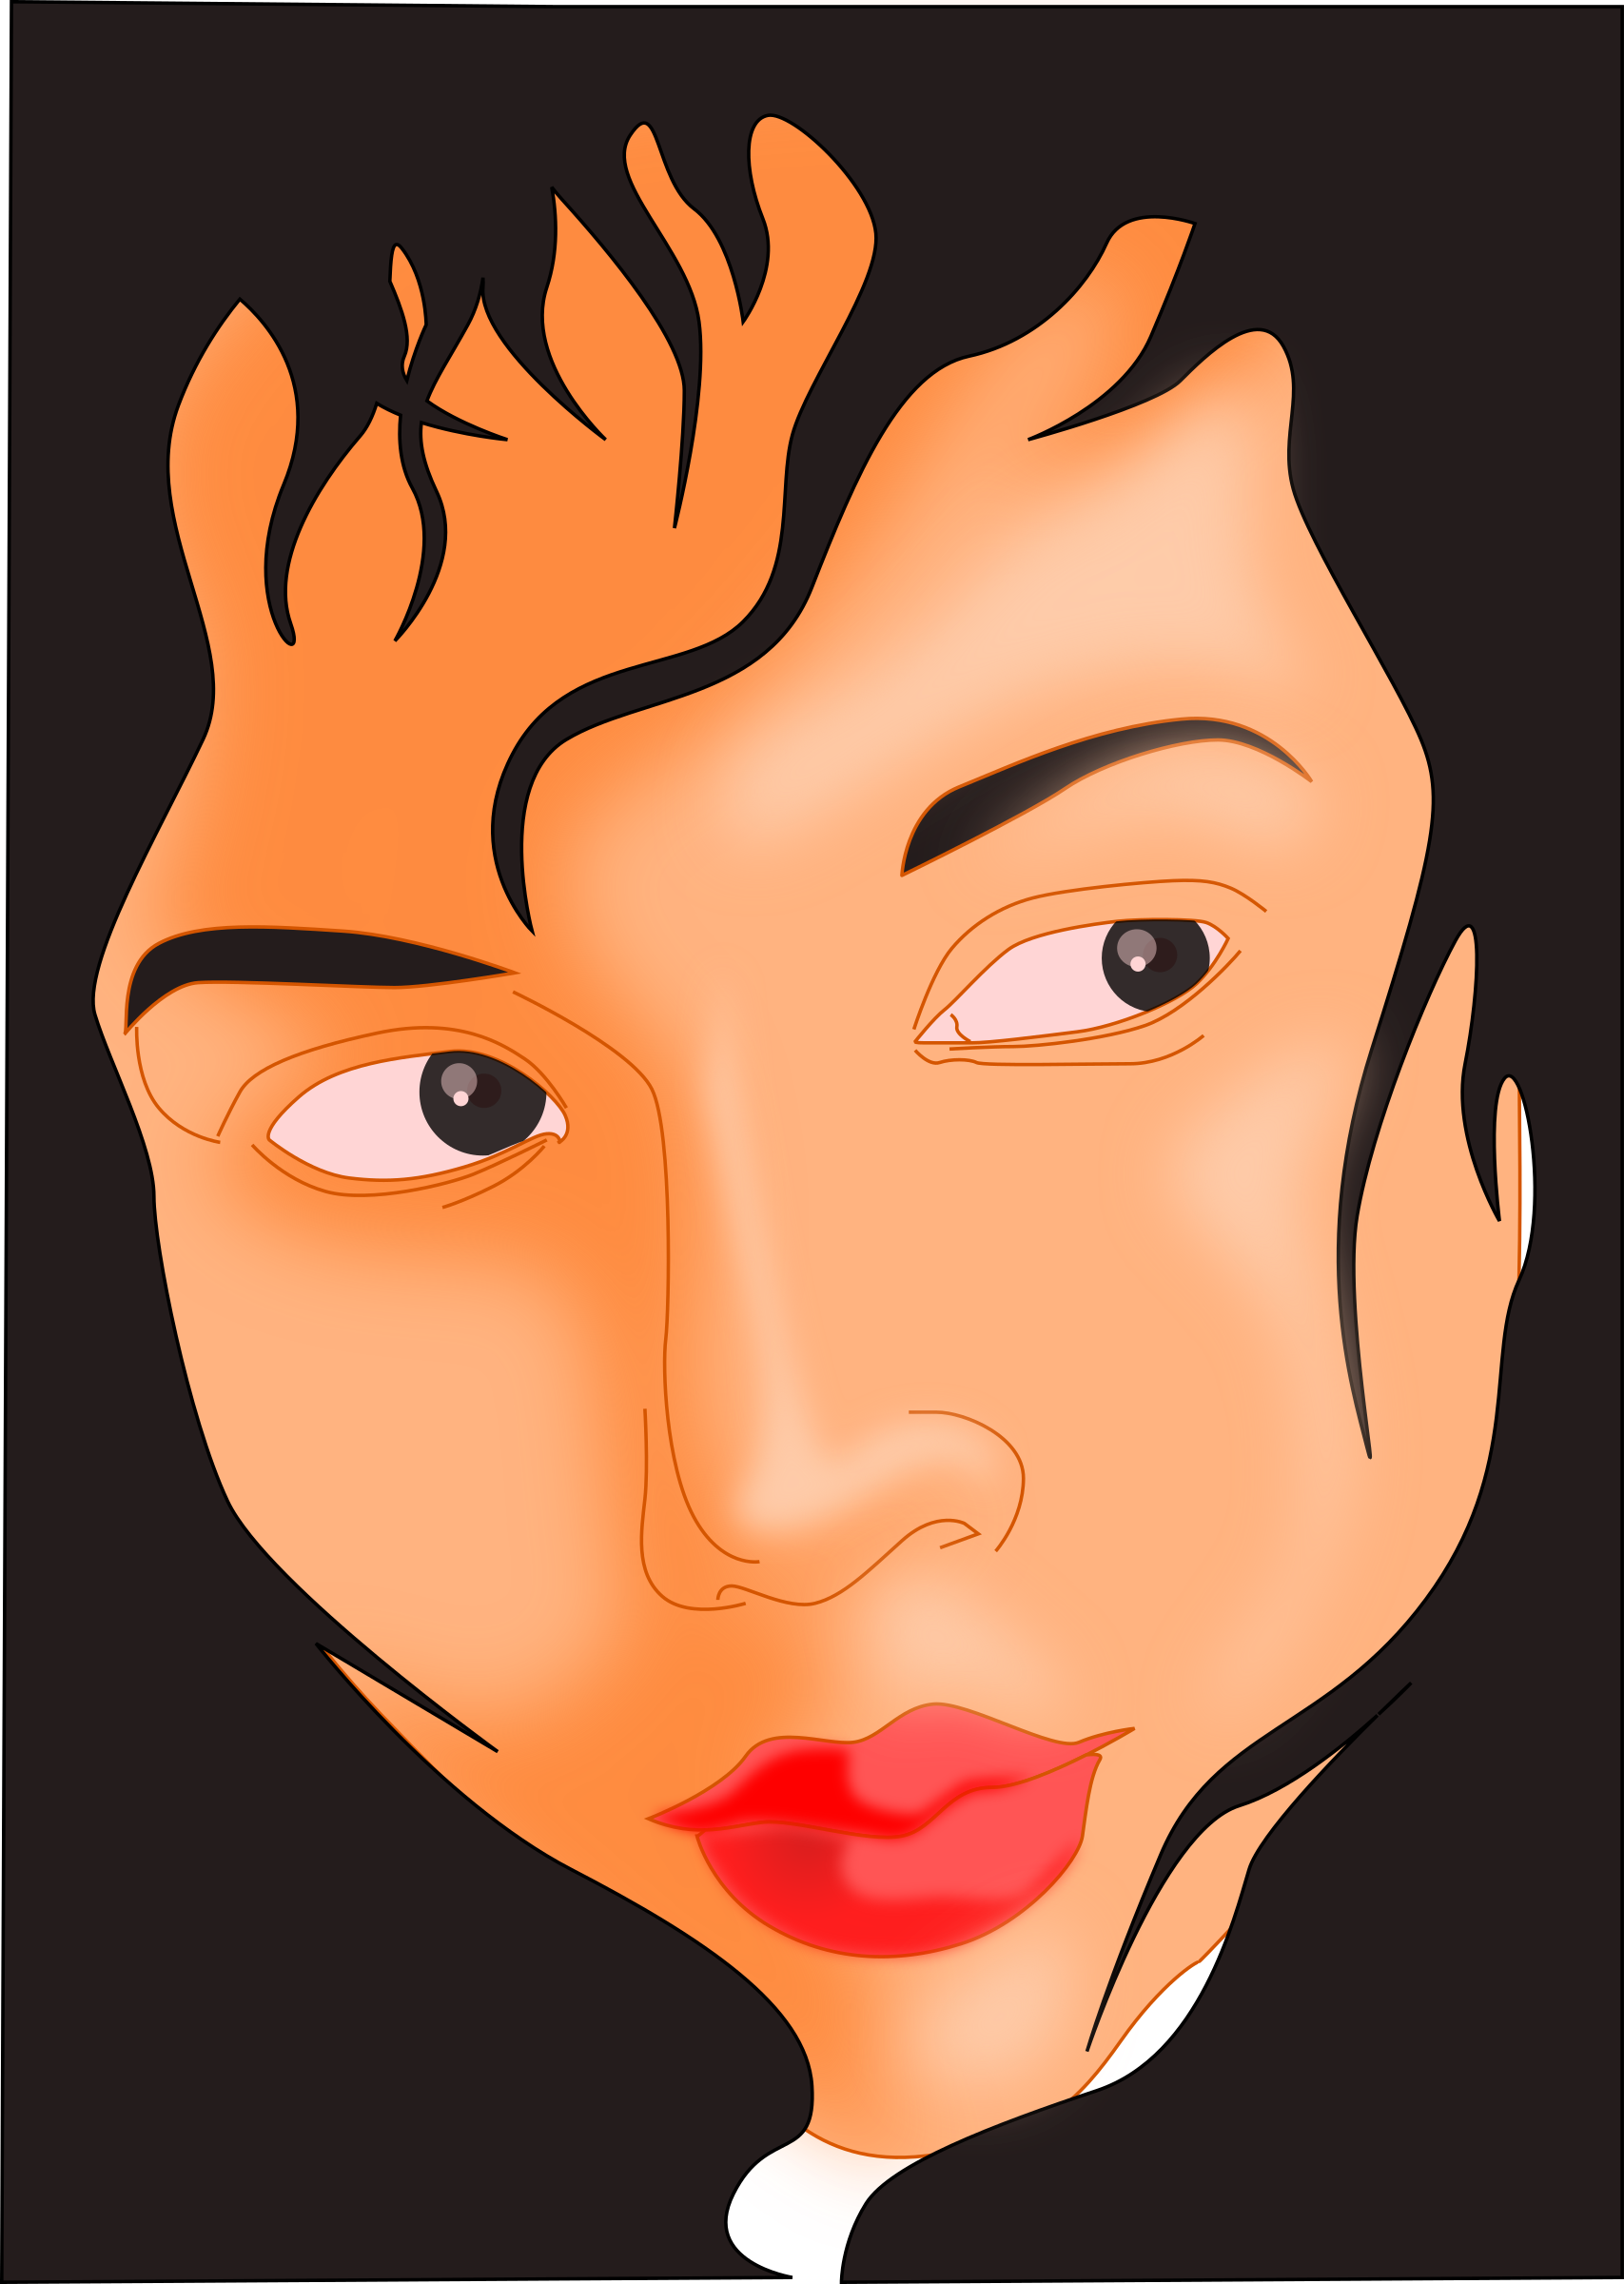 Girl's face in black frame by kablam